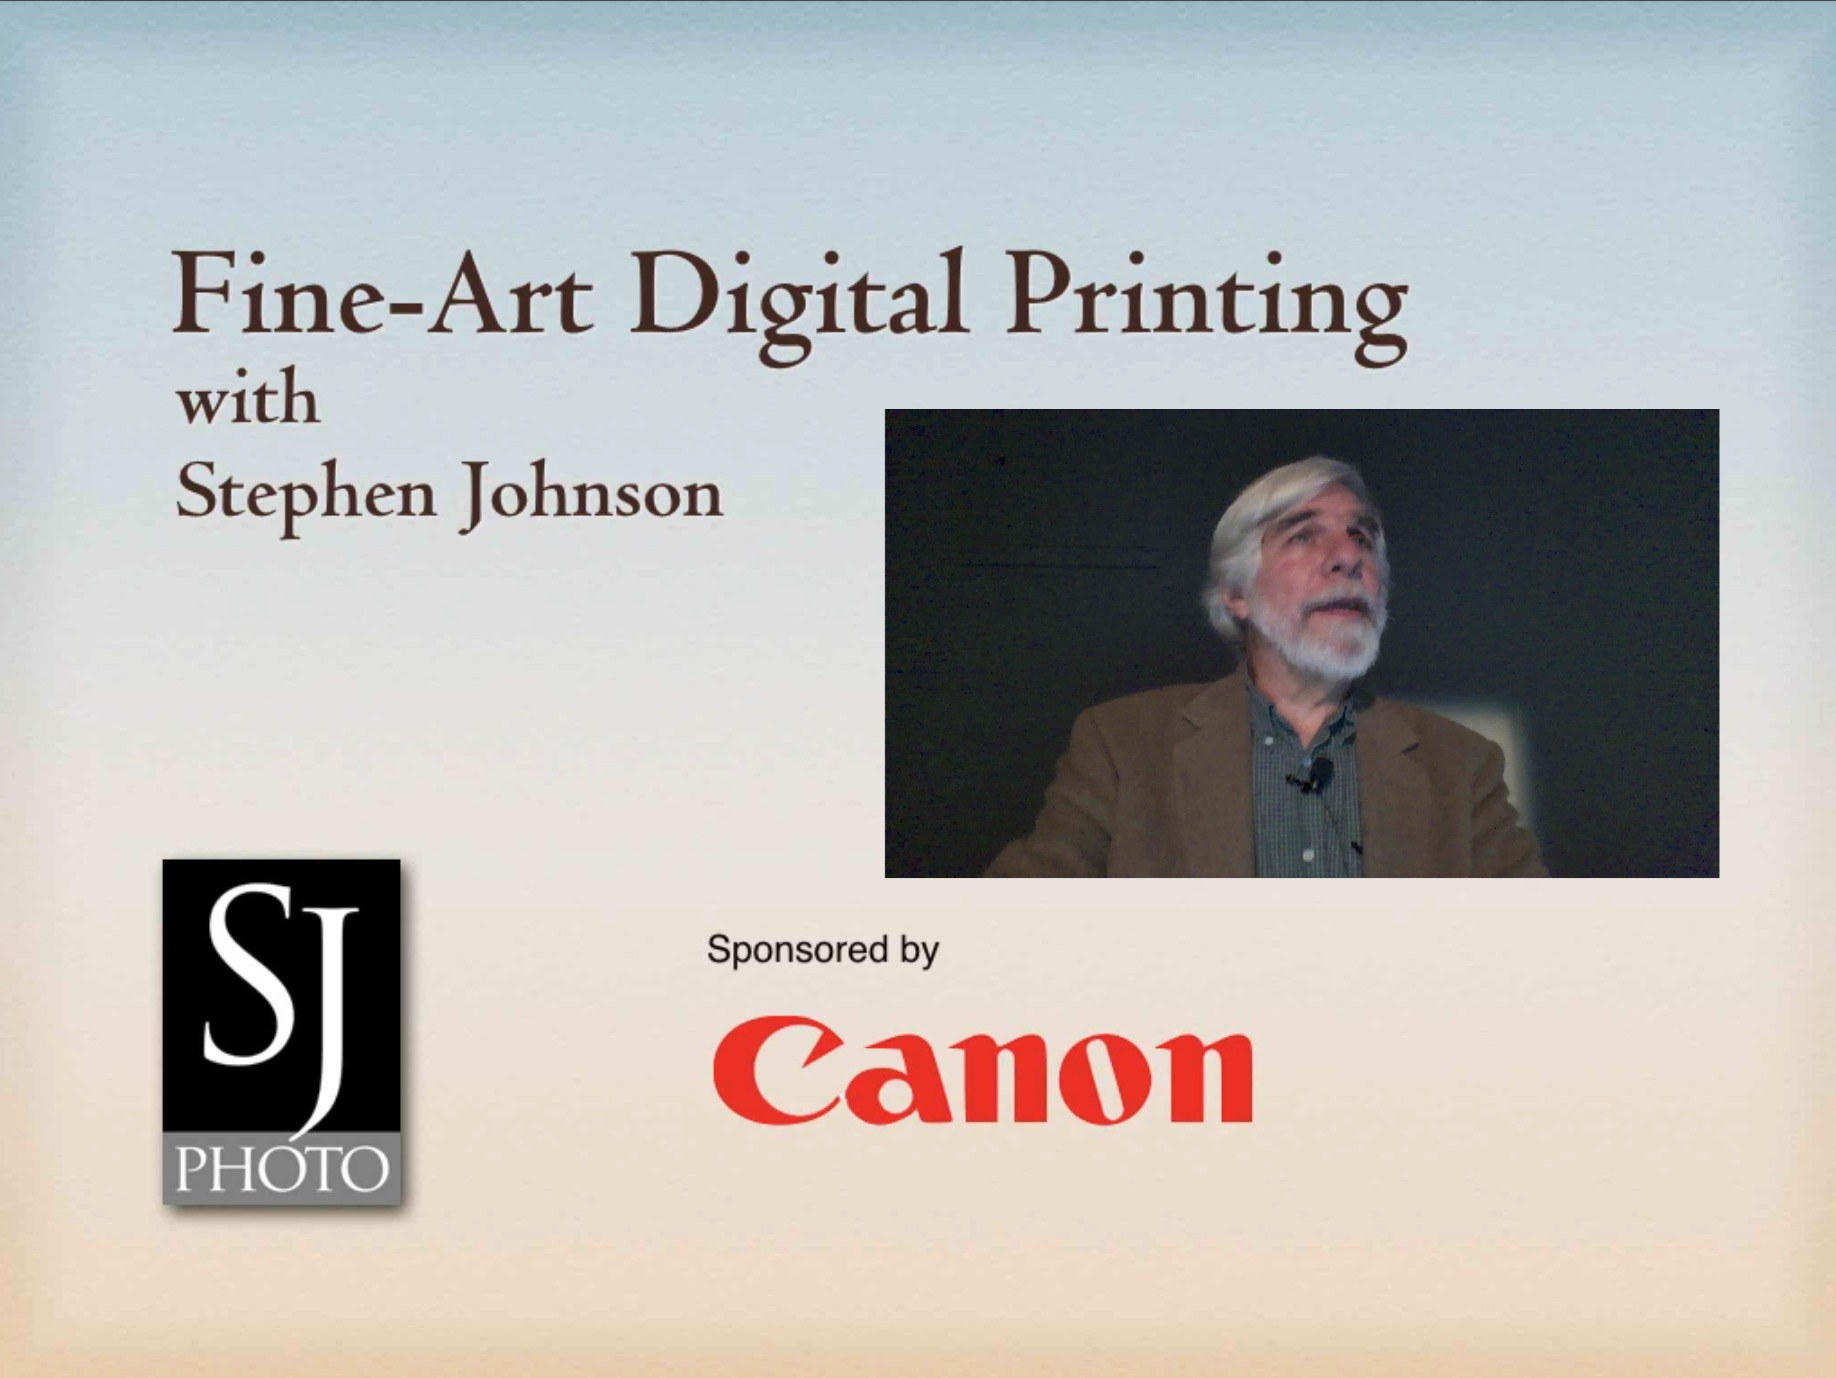 PhotoPlus-lecture-10-18.jpg